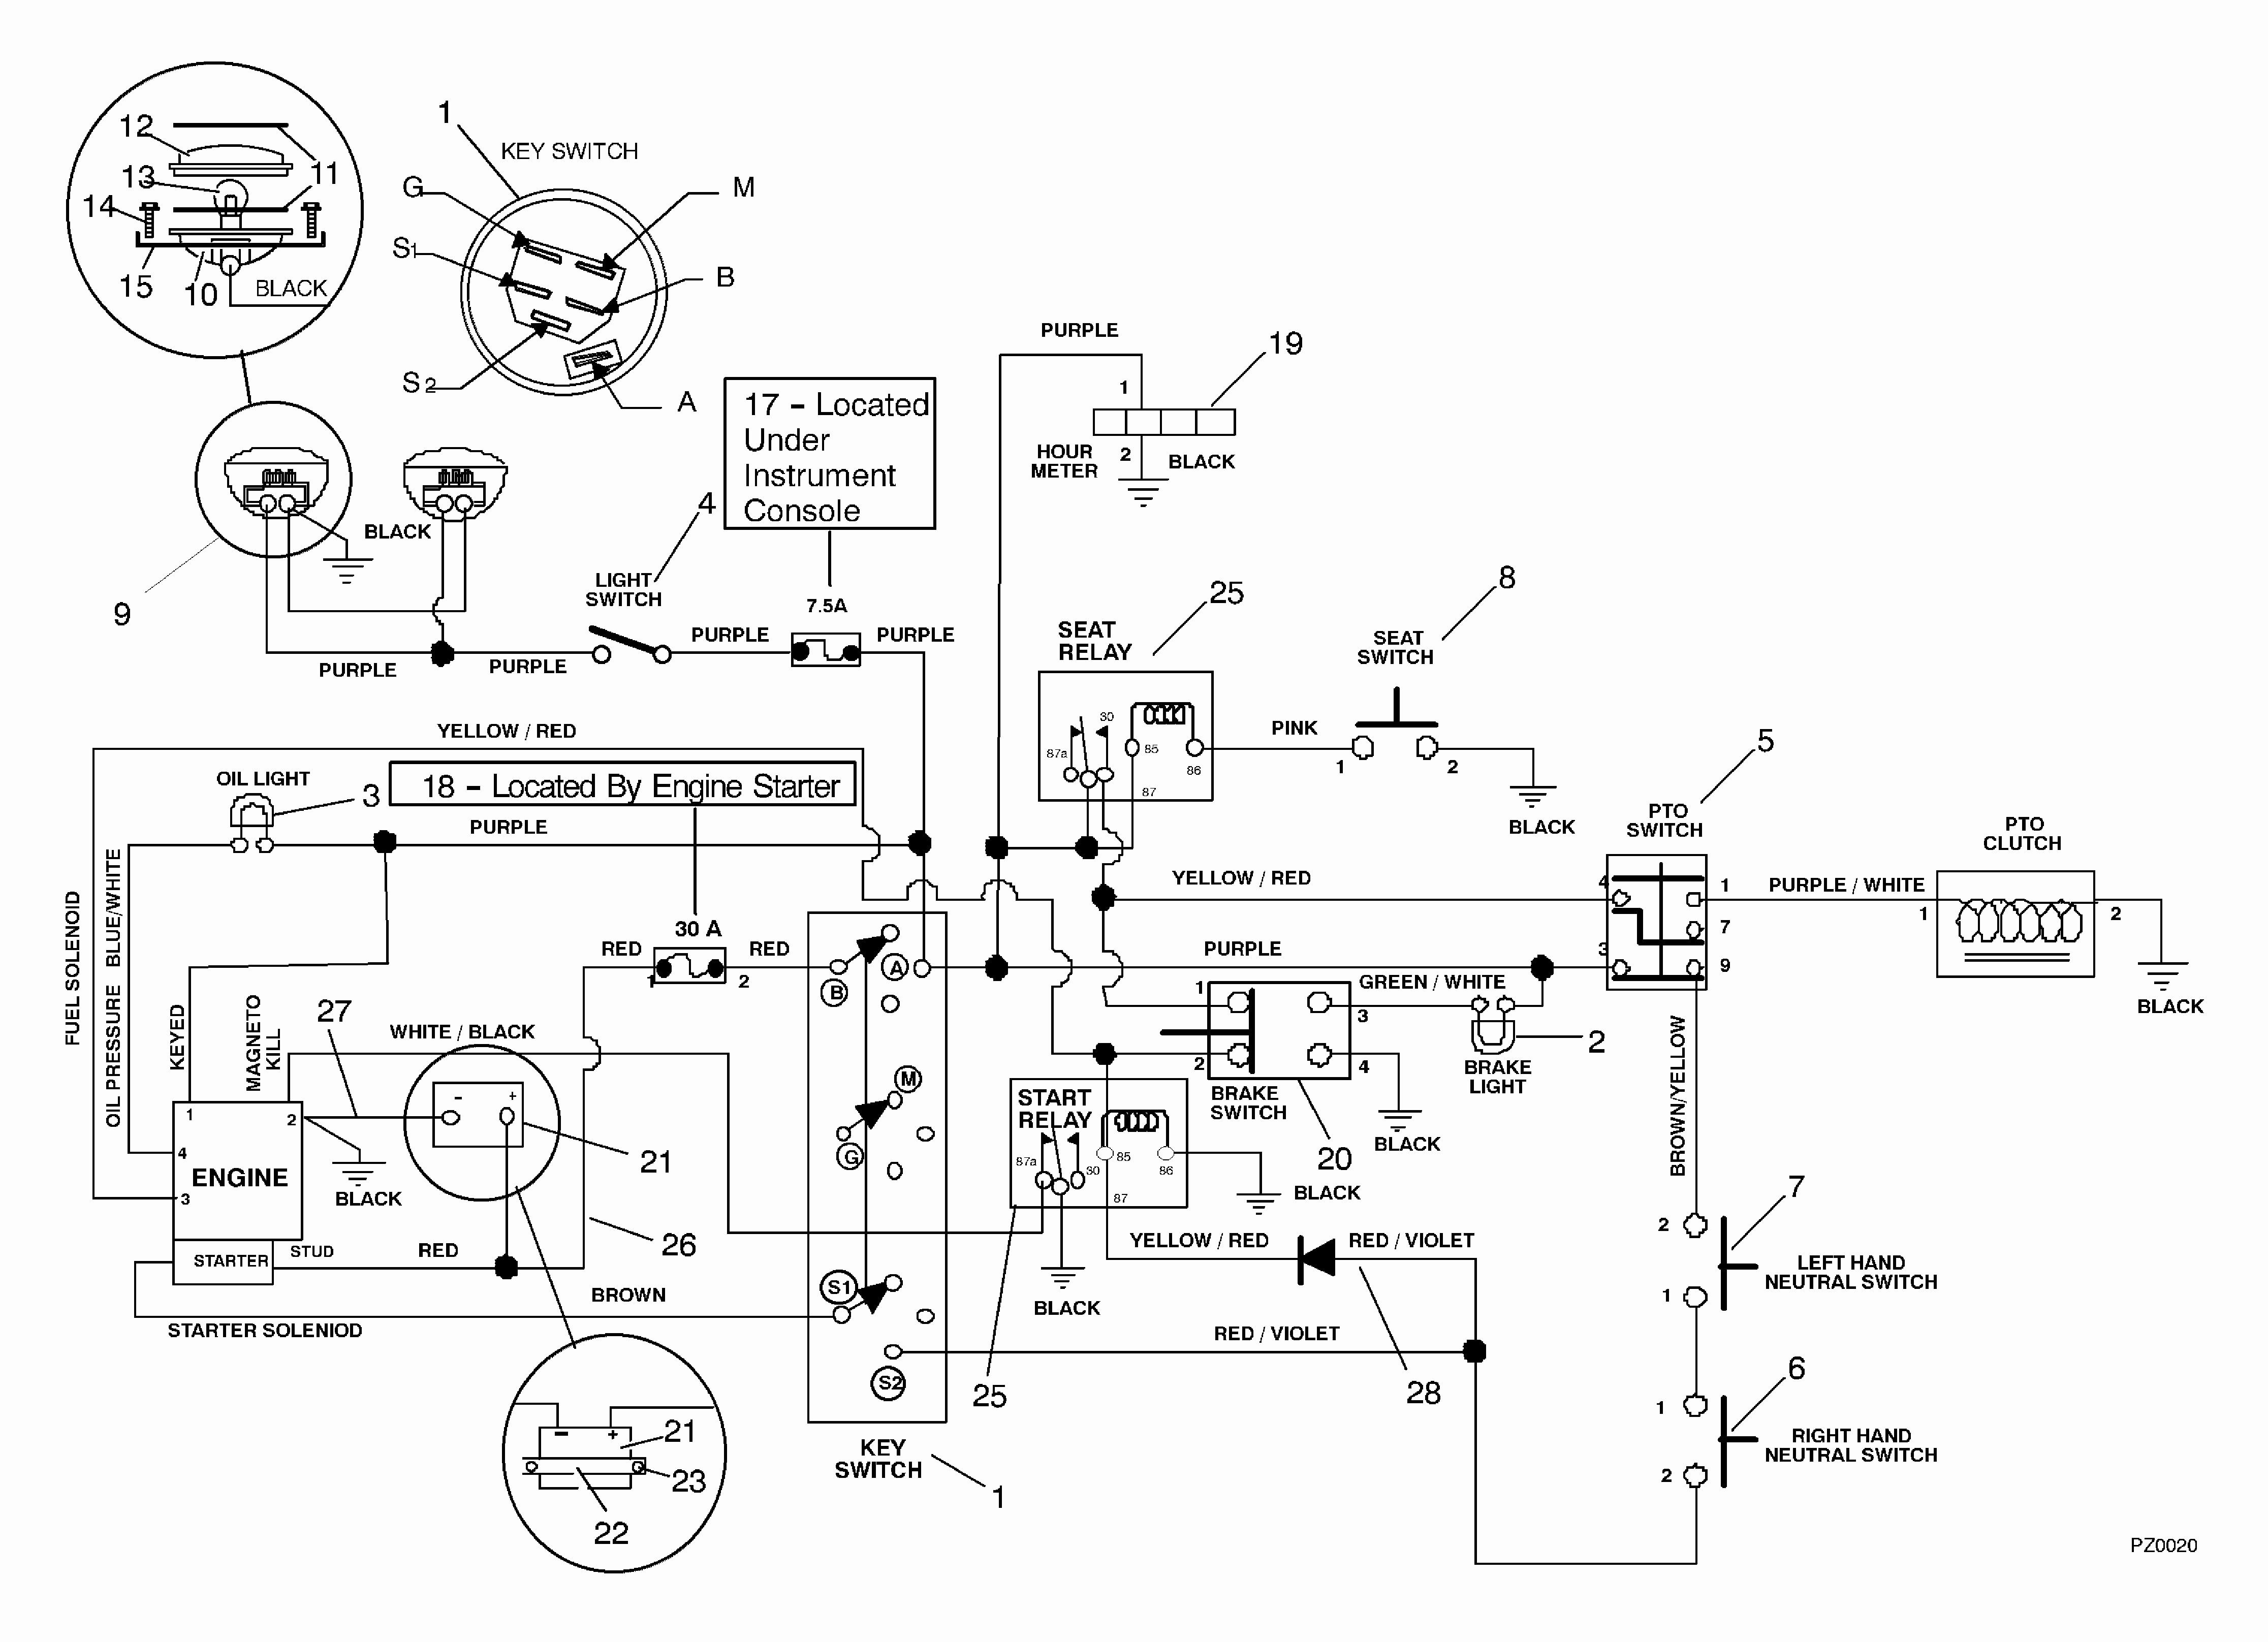 kohler generator wiring diagram wiring diagram kohler generator new wiring diagram kohler engine ignition wiring diagram awesome 11m kohler generator wiring diagram download